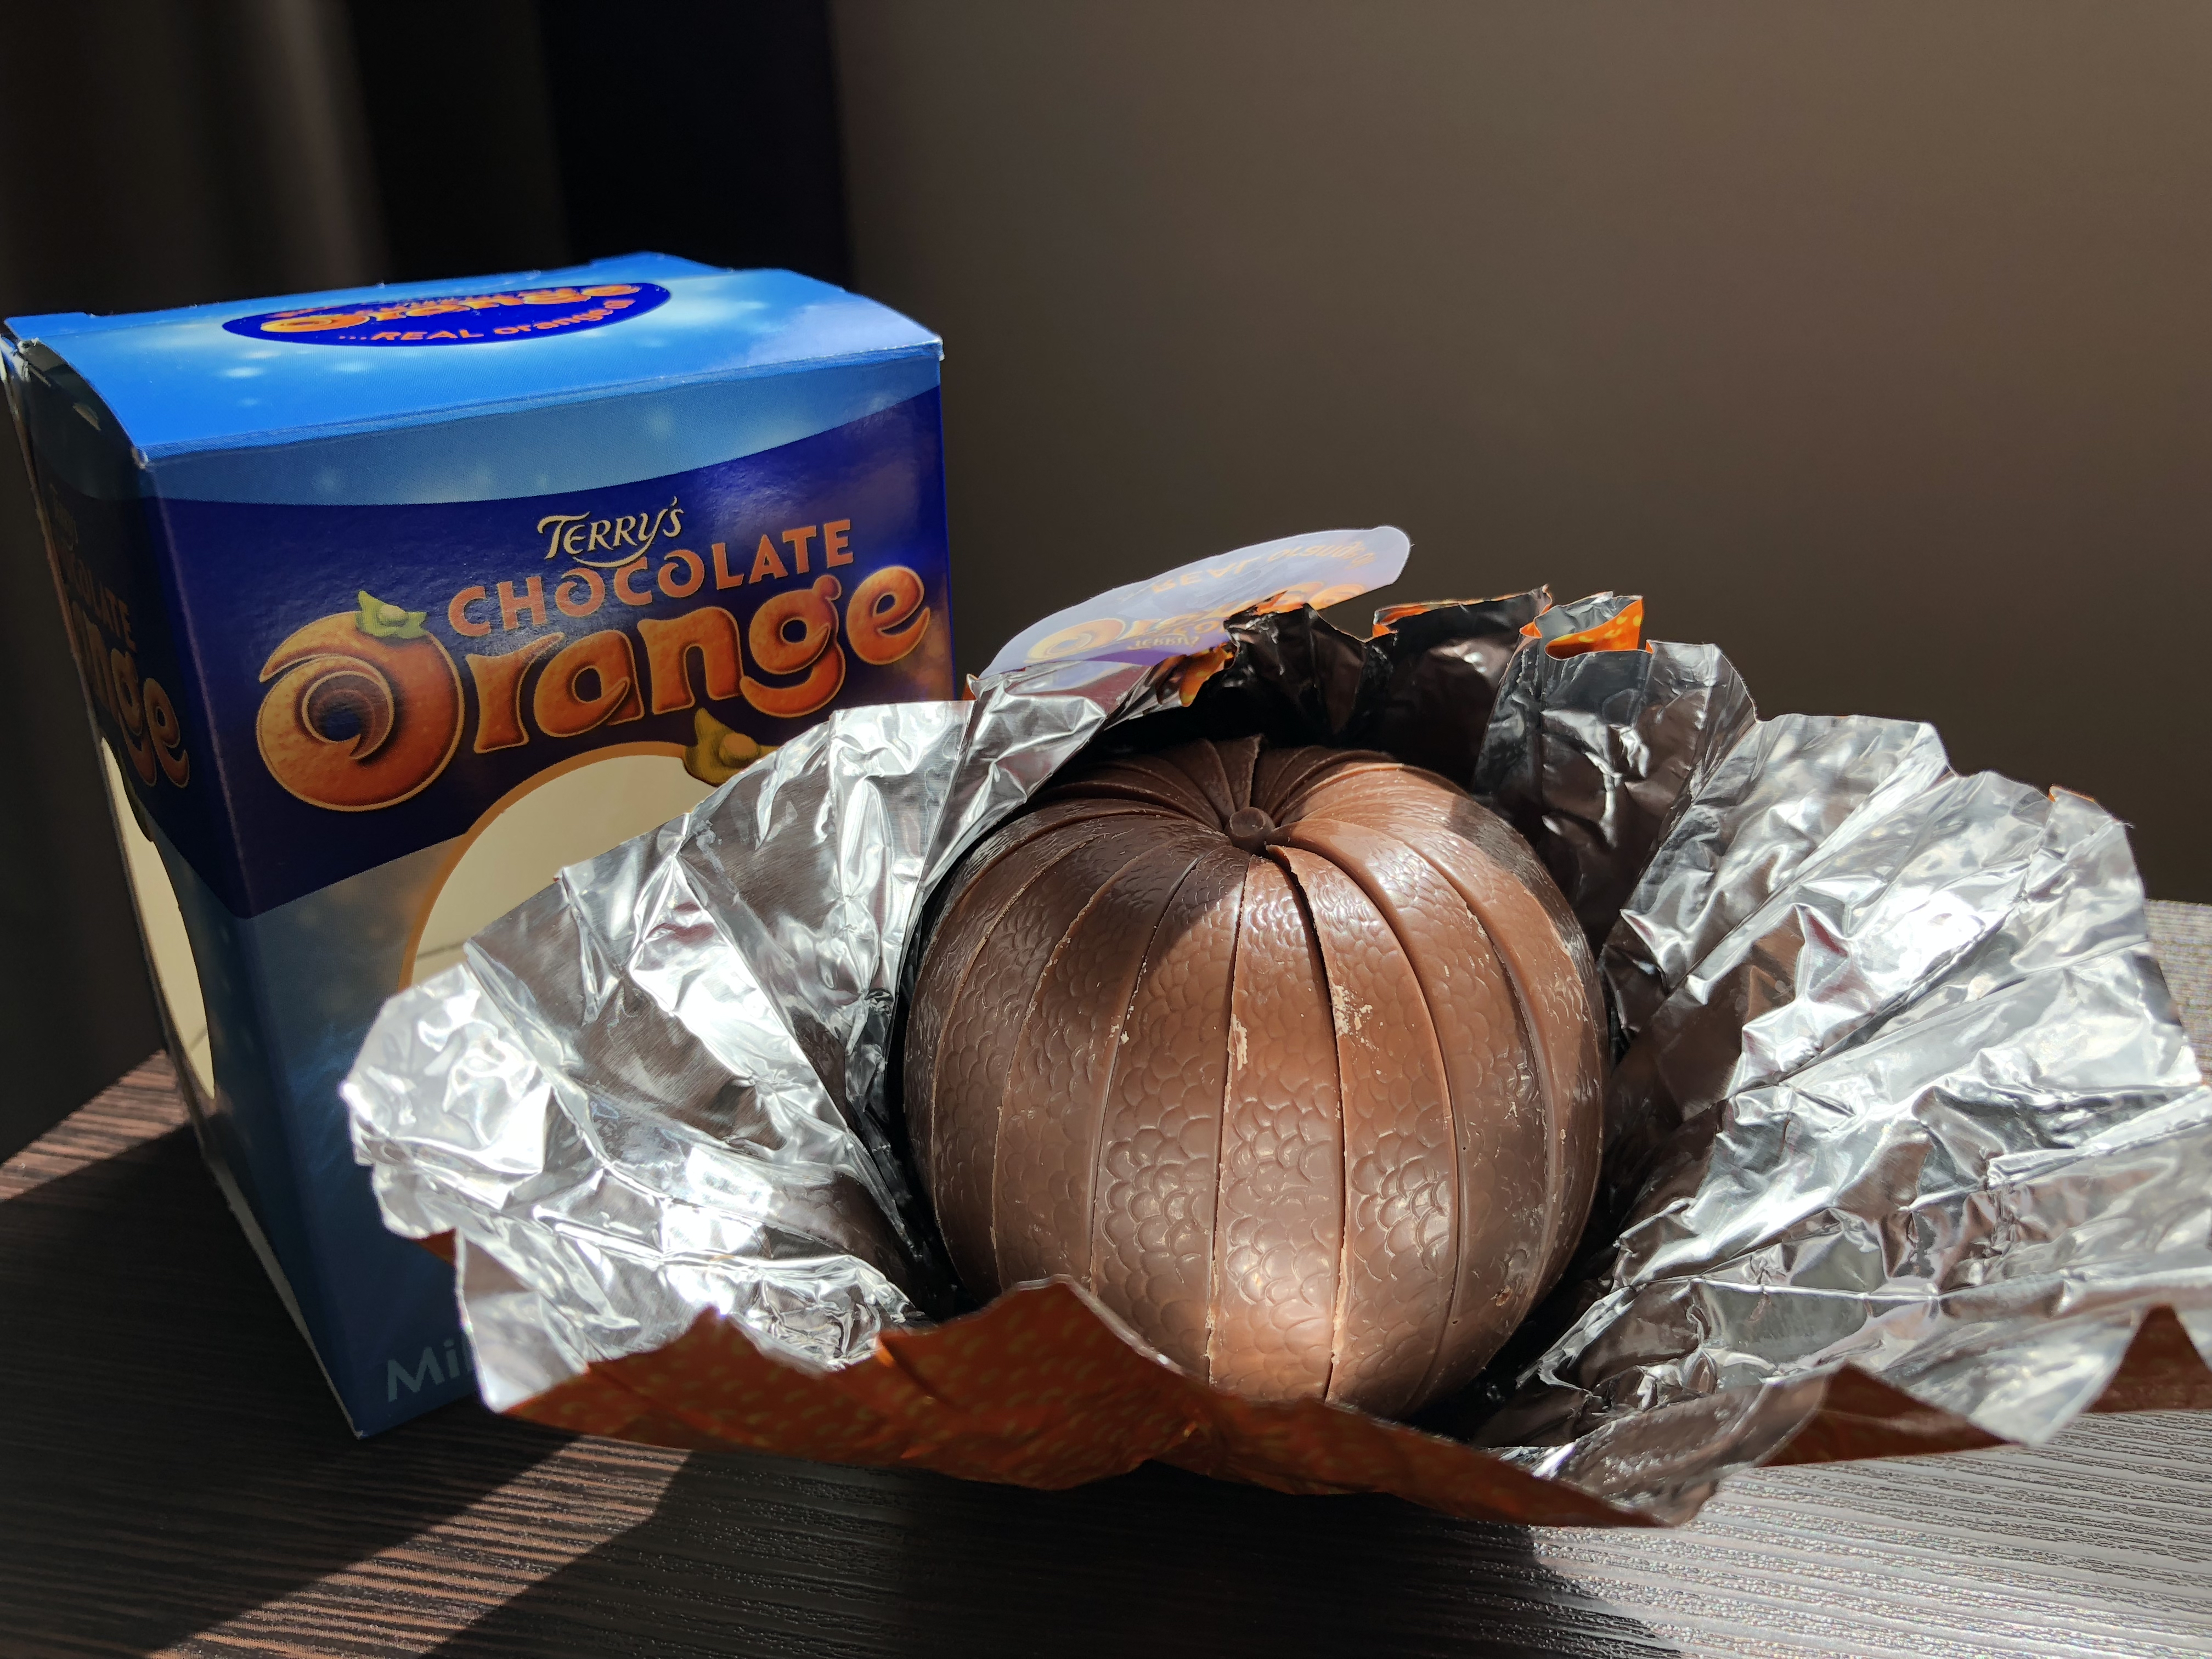 A partially unwrapped standard Terry's Chocolate Orange